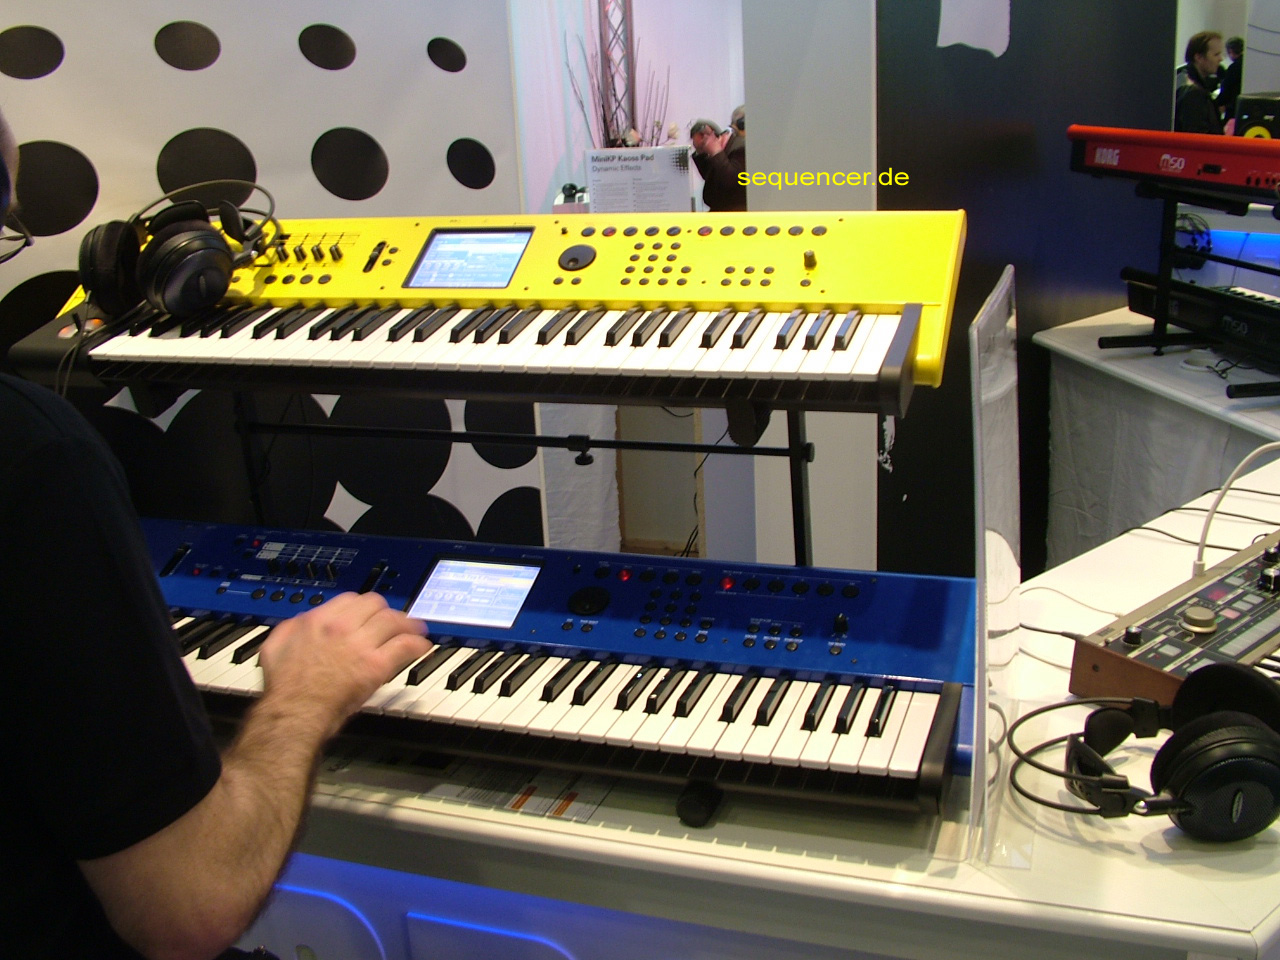 Korg M50 synthesizer